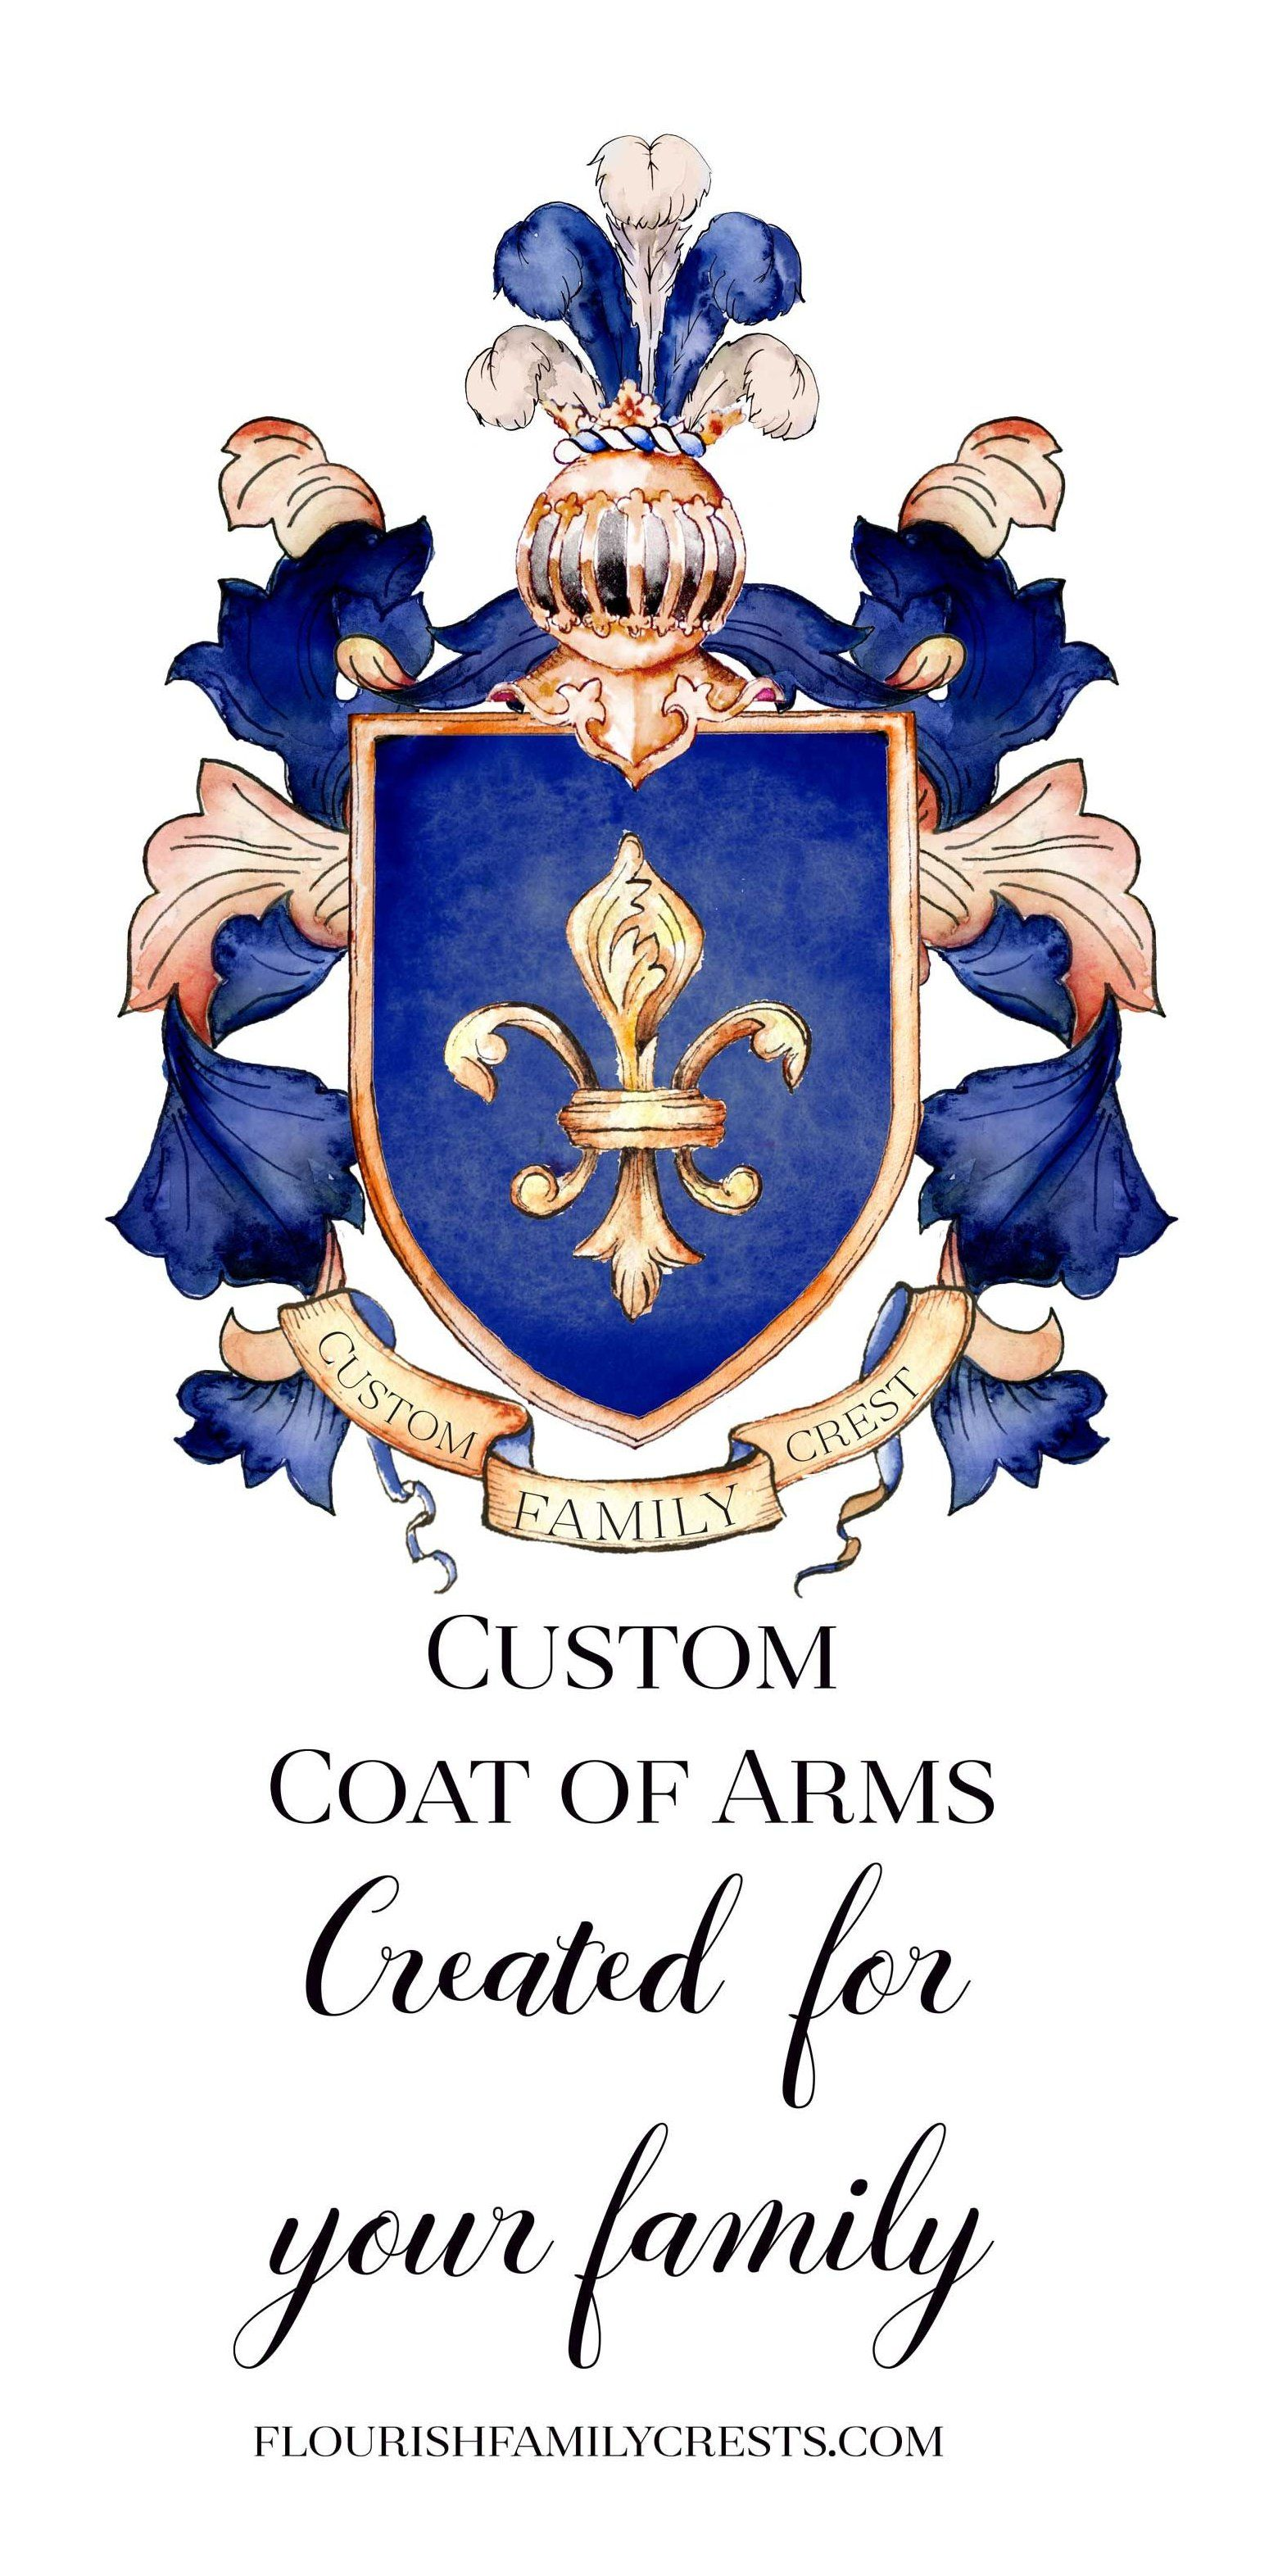 crest arms coat own certificate kaynak